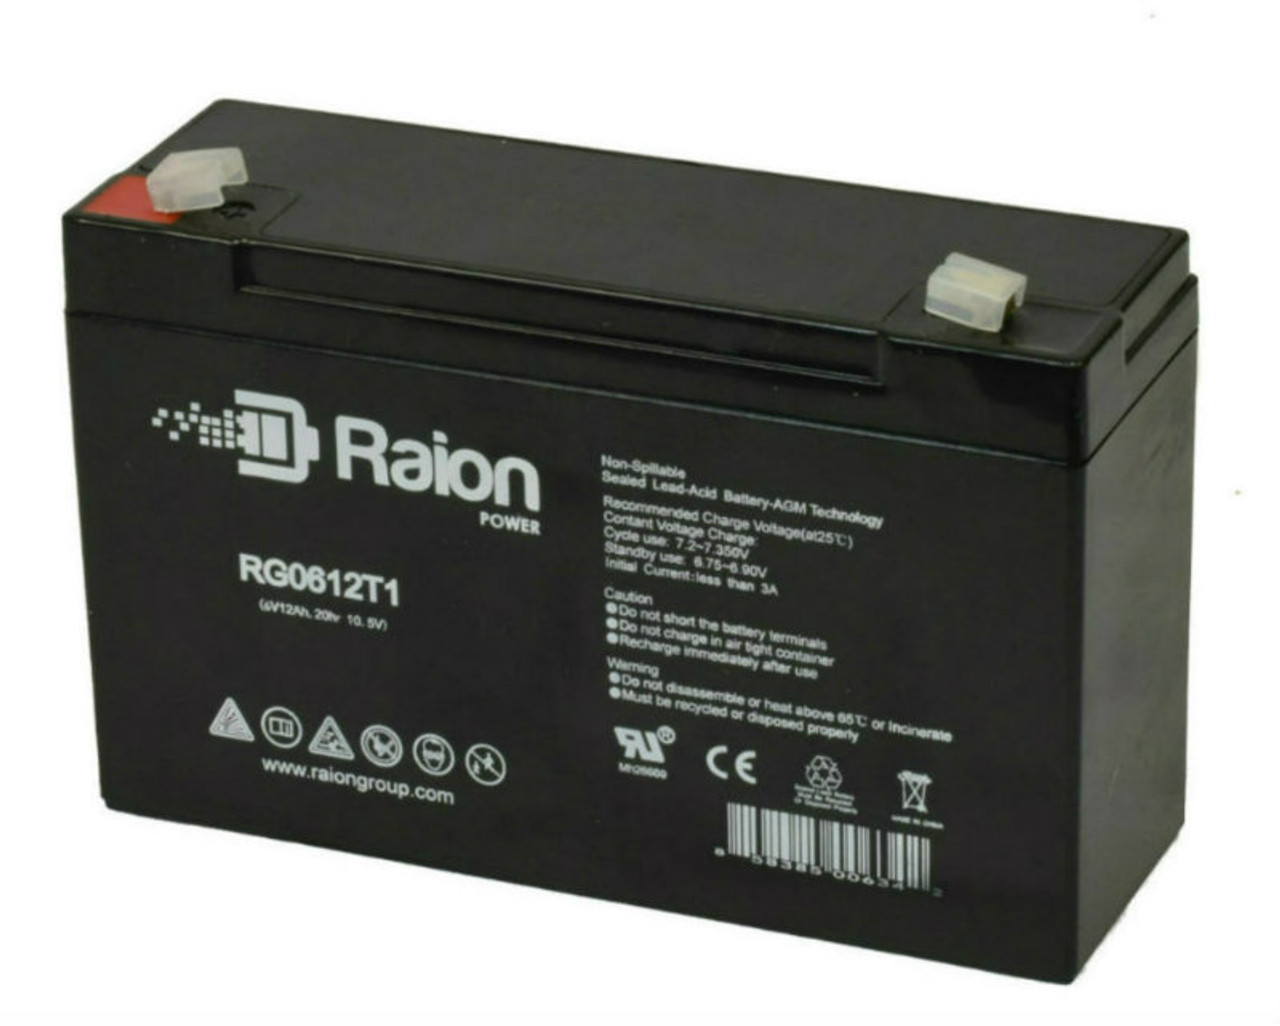 Raion Power RG06120T1 Replacement Battery Pack for Teledyne Big Beam 2SC6S8 emergency light